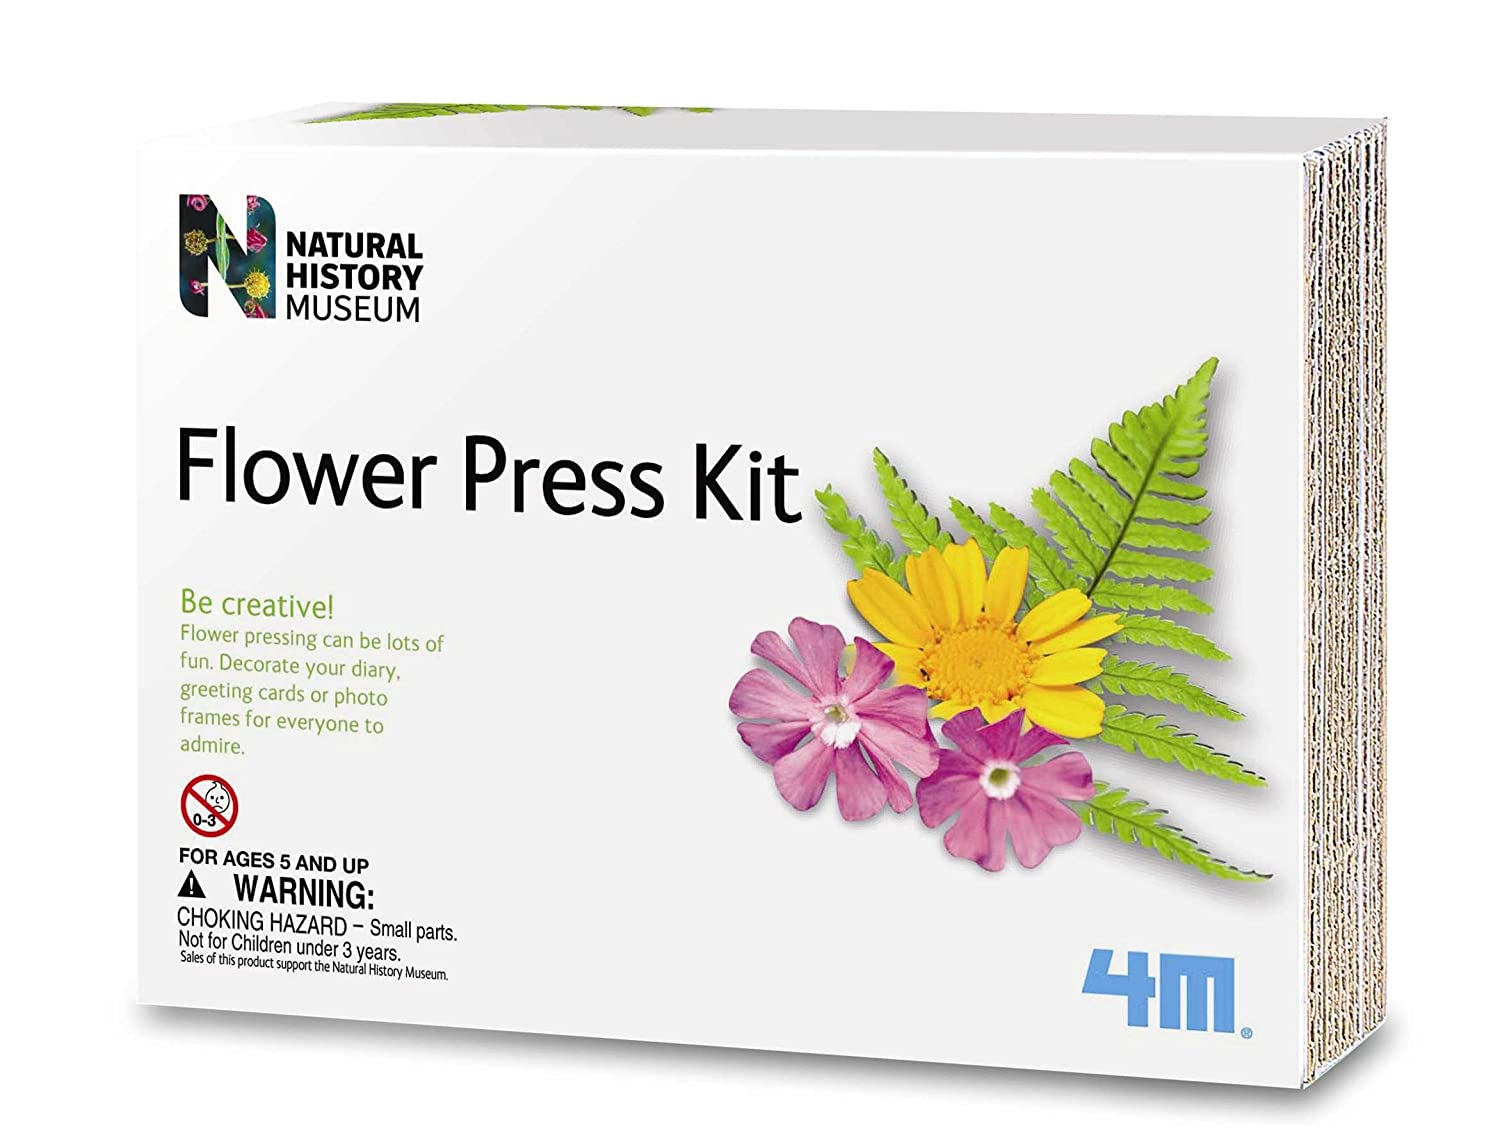 Natural History Museum Flower Pressing Kit Amazon Toys Games